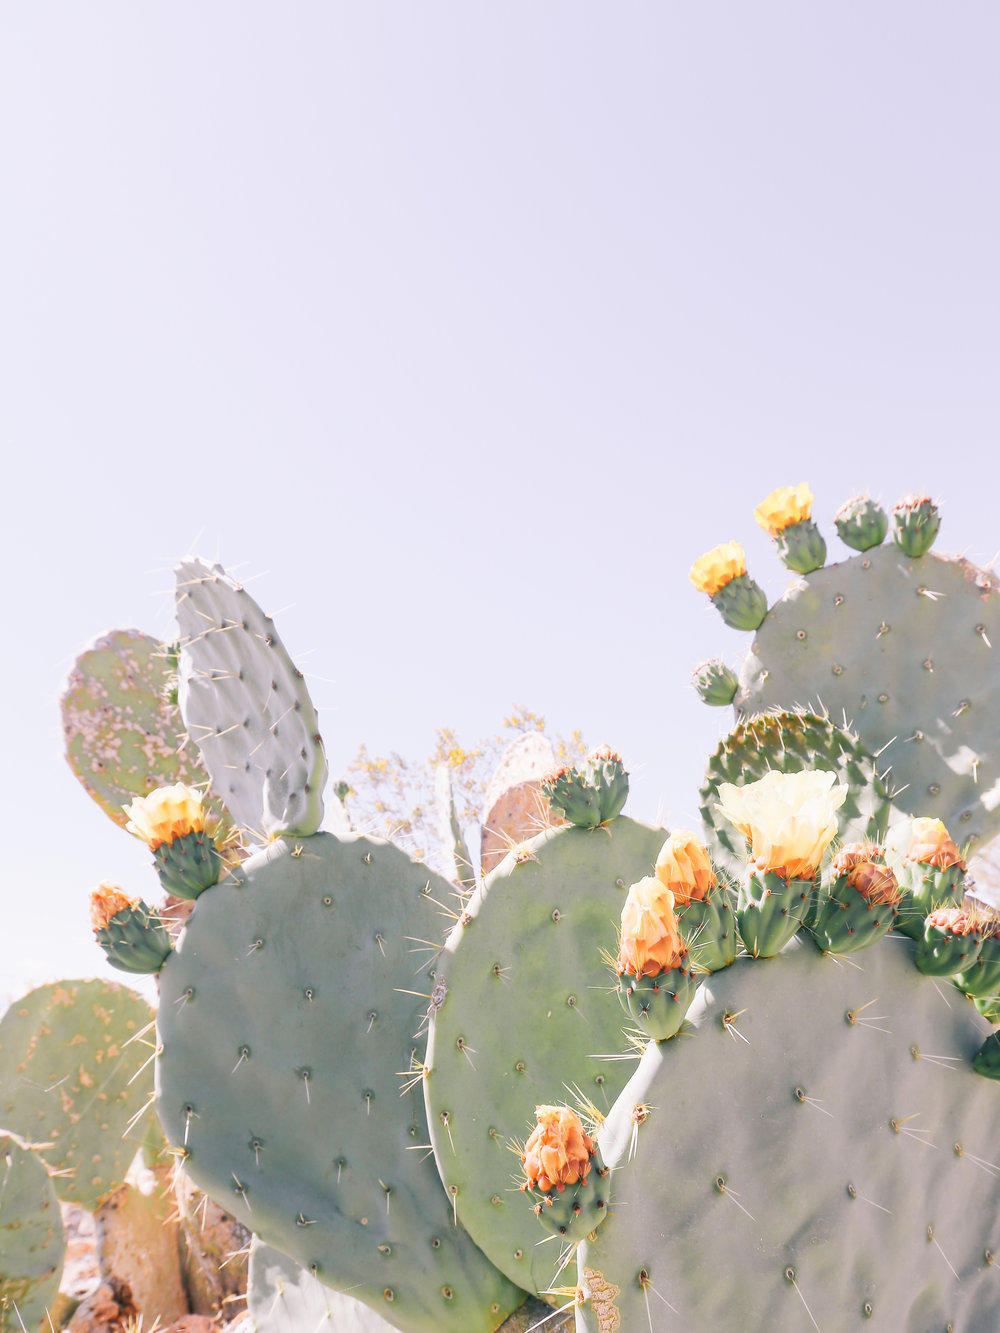 Blooming Cactus in Joshua Tree, CA